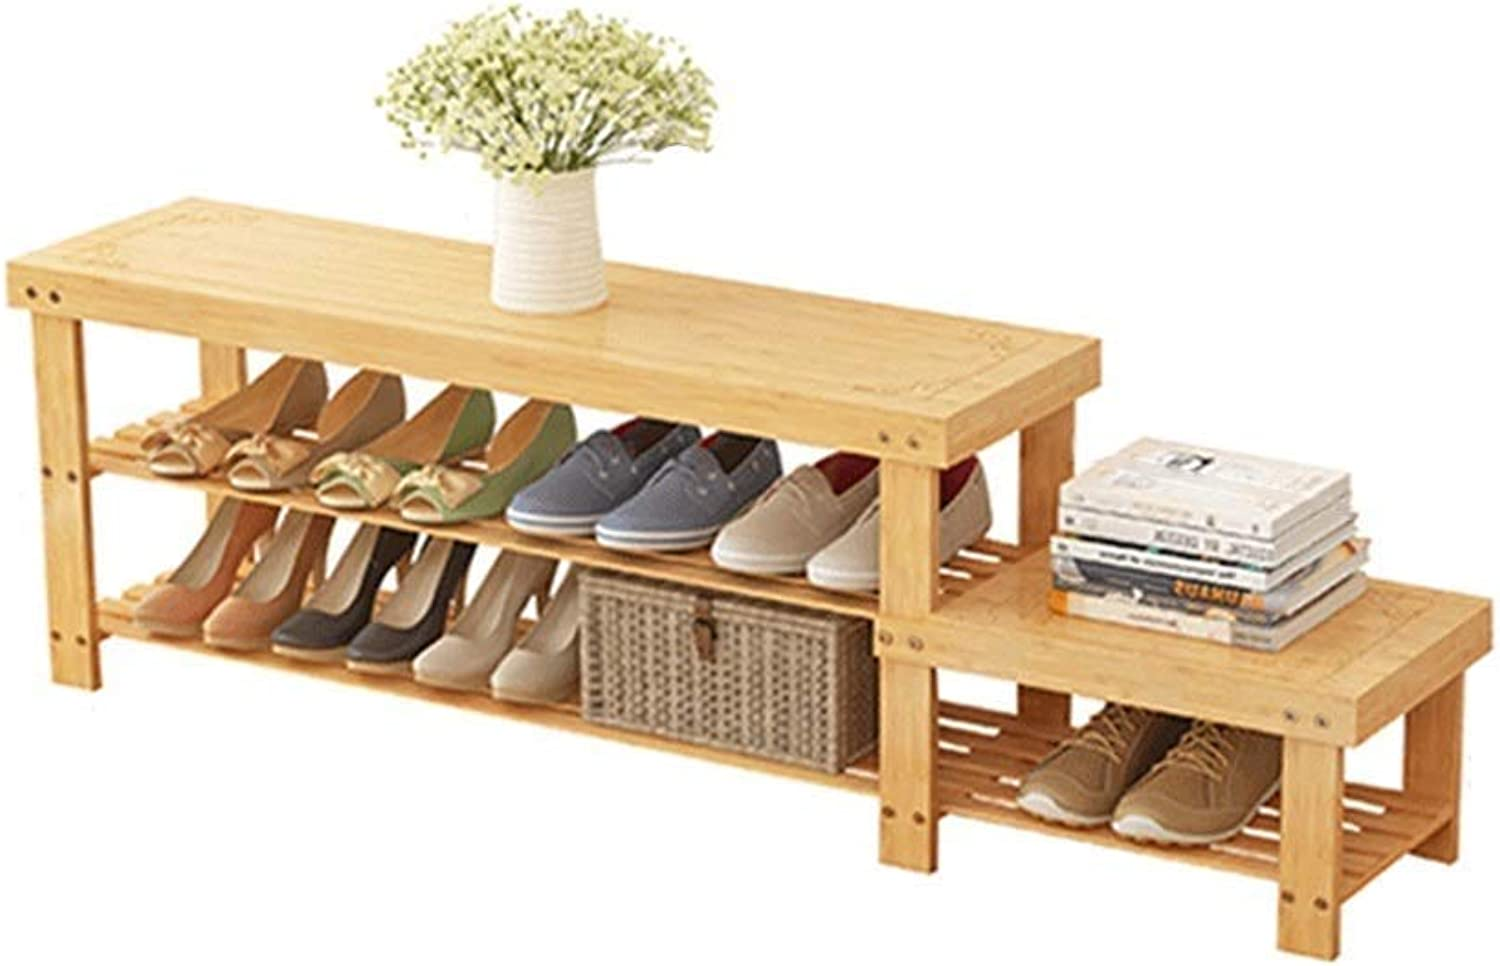 2-Story shoes Bench Living Room Bedroom Bamboo shoes Rack Corridor Bench (Size   128  28  45cm)